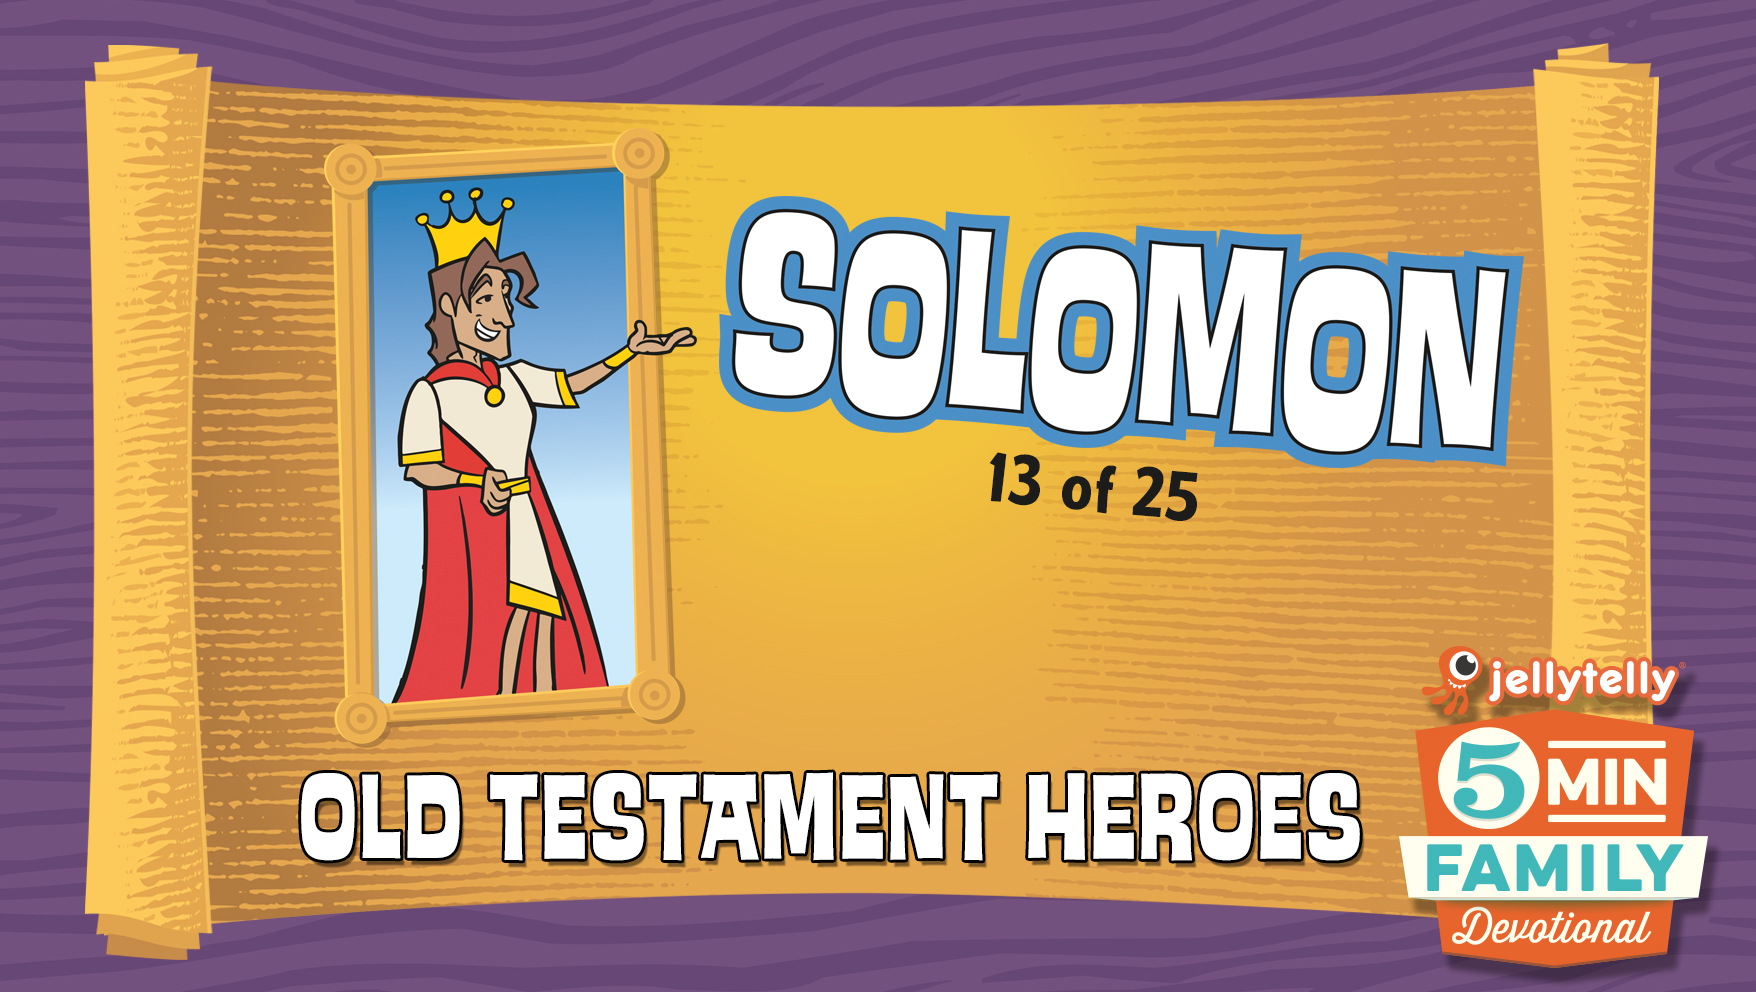 Solomon: Old Testament Heroes - 5 Minute Family Devotional